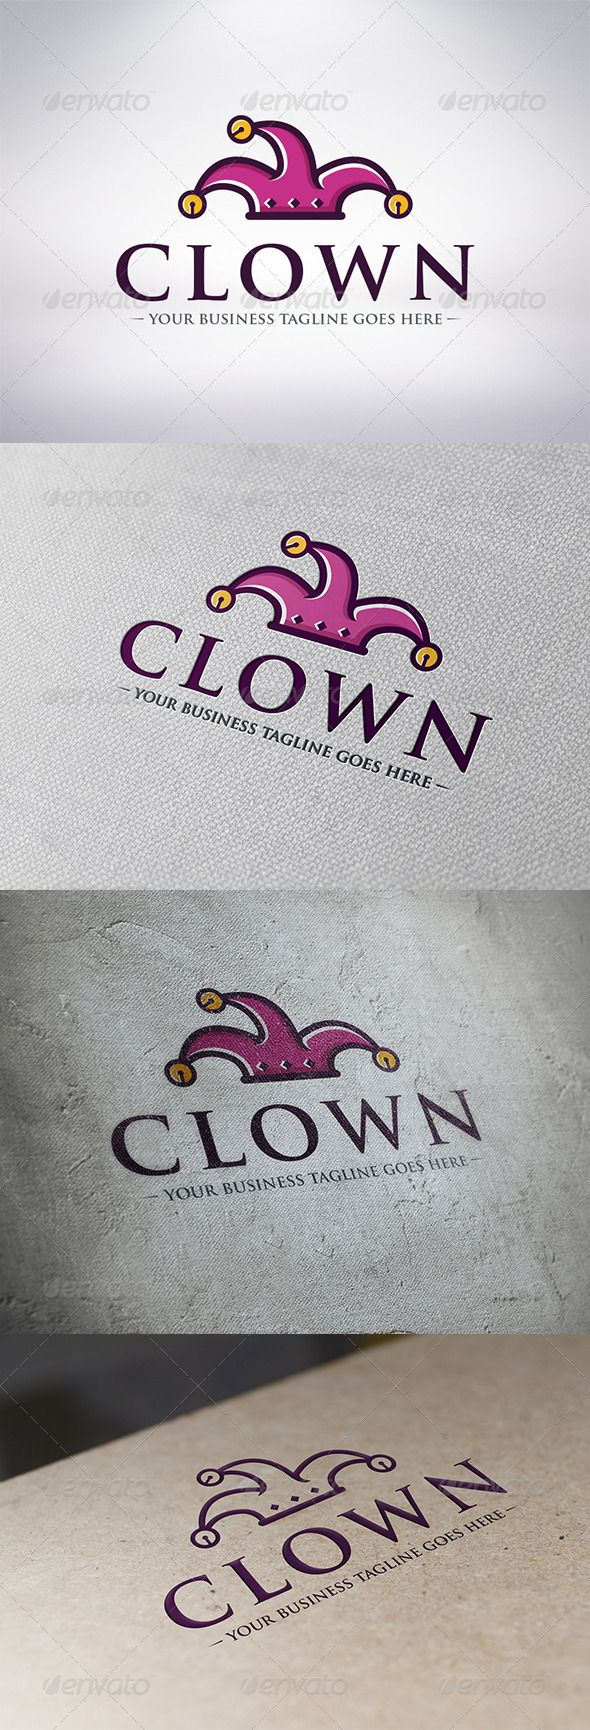 Clown Logo Template #GraphicRiver - Three color version: color, greyscale and single color. - The logo is 100% resizable. - You can change text and colors very easy using the named and organized layers that includes the file. - The typography used is Trajan Pro a system default font. Created: 5 December 13 Graphics Files Included: Vector EPS #AI Illustrator Layered: Yes Minimum Adobe CS Version: CS Resolution: Resizable Tags brand #buffoon #business #cards #circus #clown #colors #company…